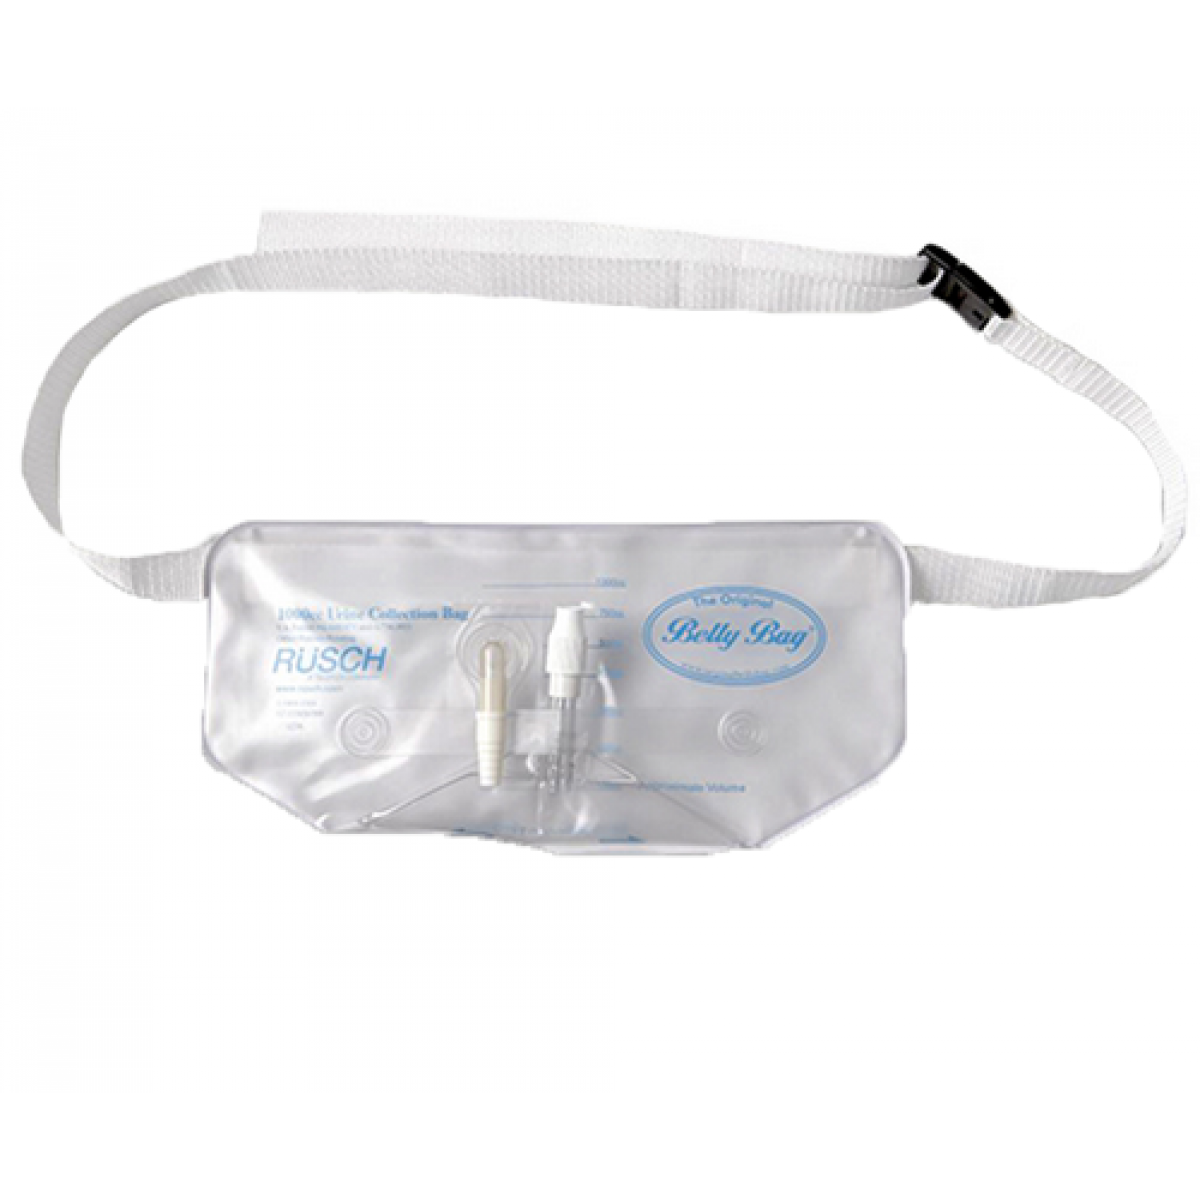 Rusch Belly Bag Urinary Collection By Teleflex Medical